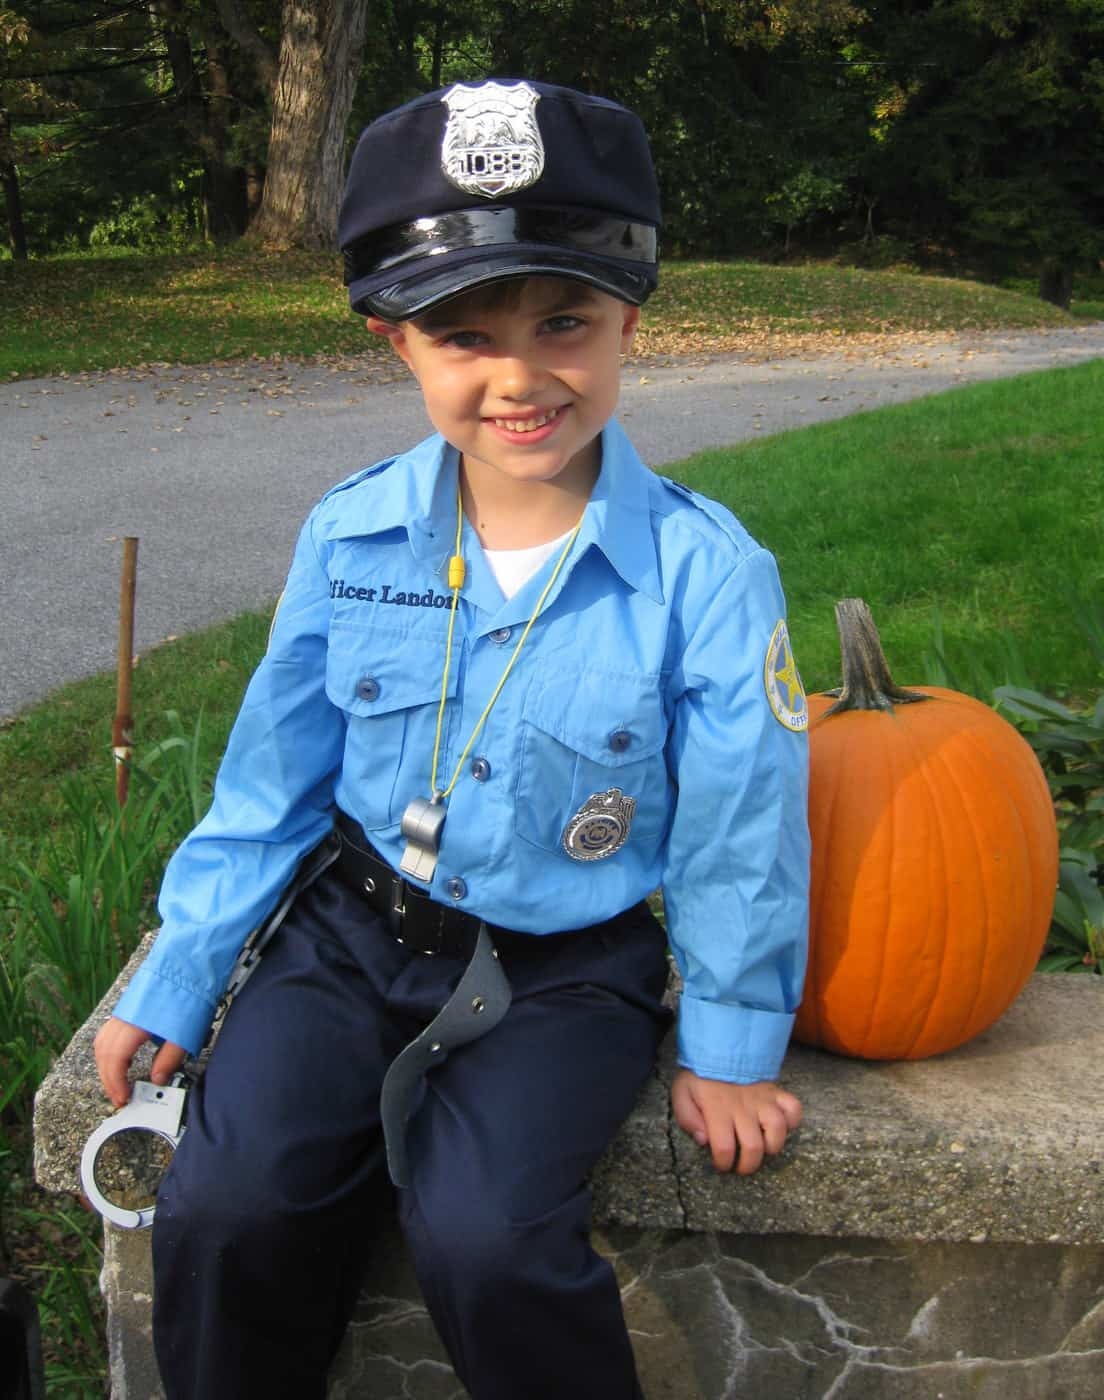 Landon's Halloween Costumes for This Year: Meet Officer Landon